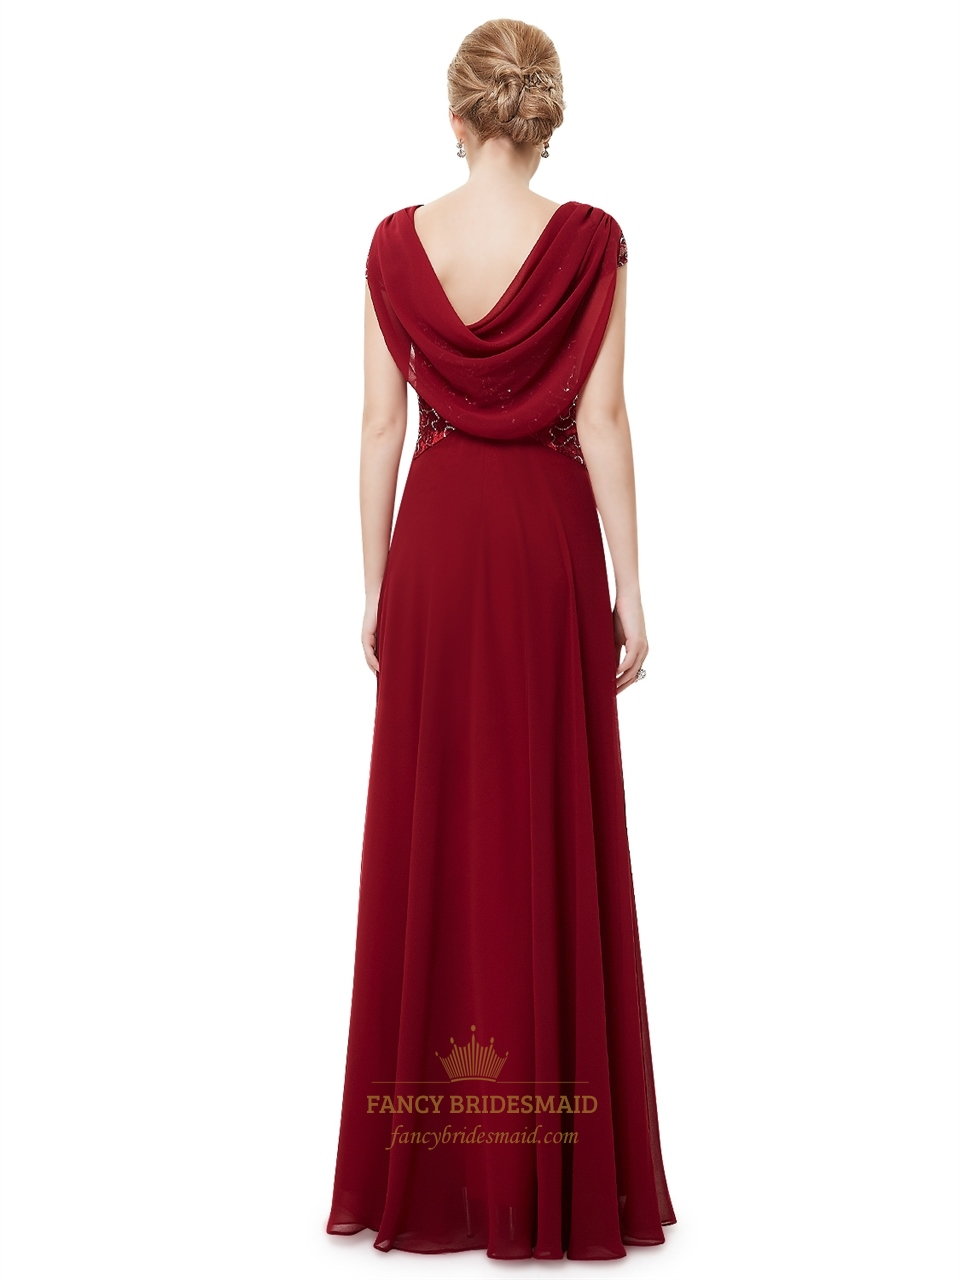 Burgundy Chiffon Cowl Back Lace Bodice Prom Dresses With Cap Sleeves | Fancy Bridesmaid Dresses